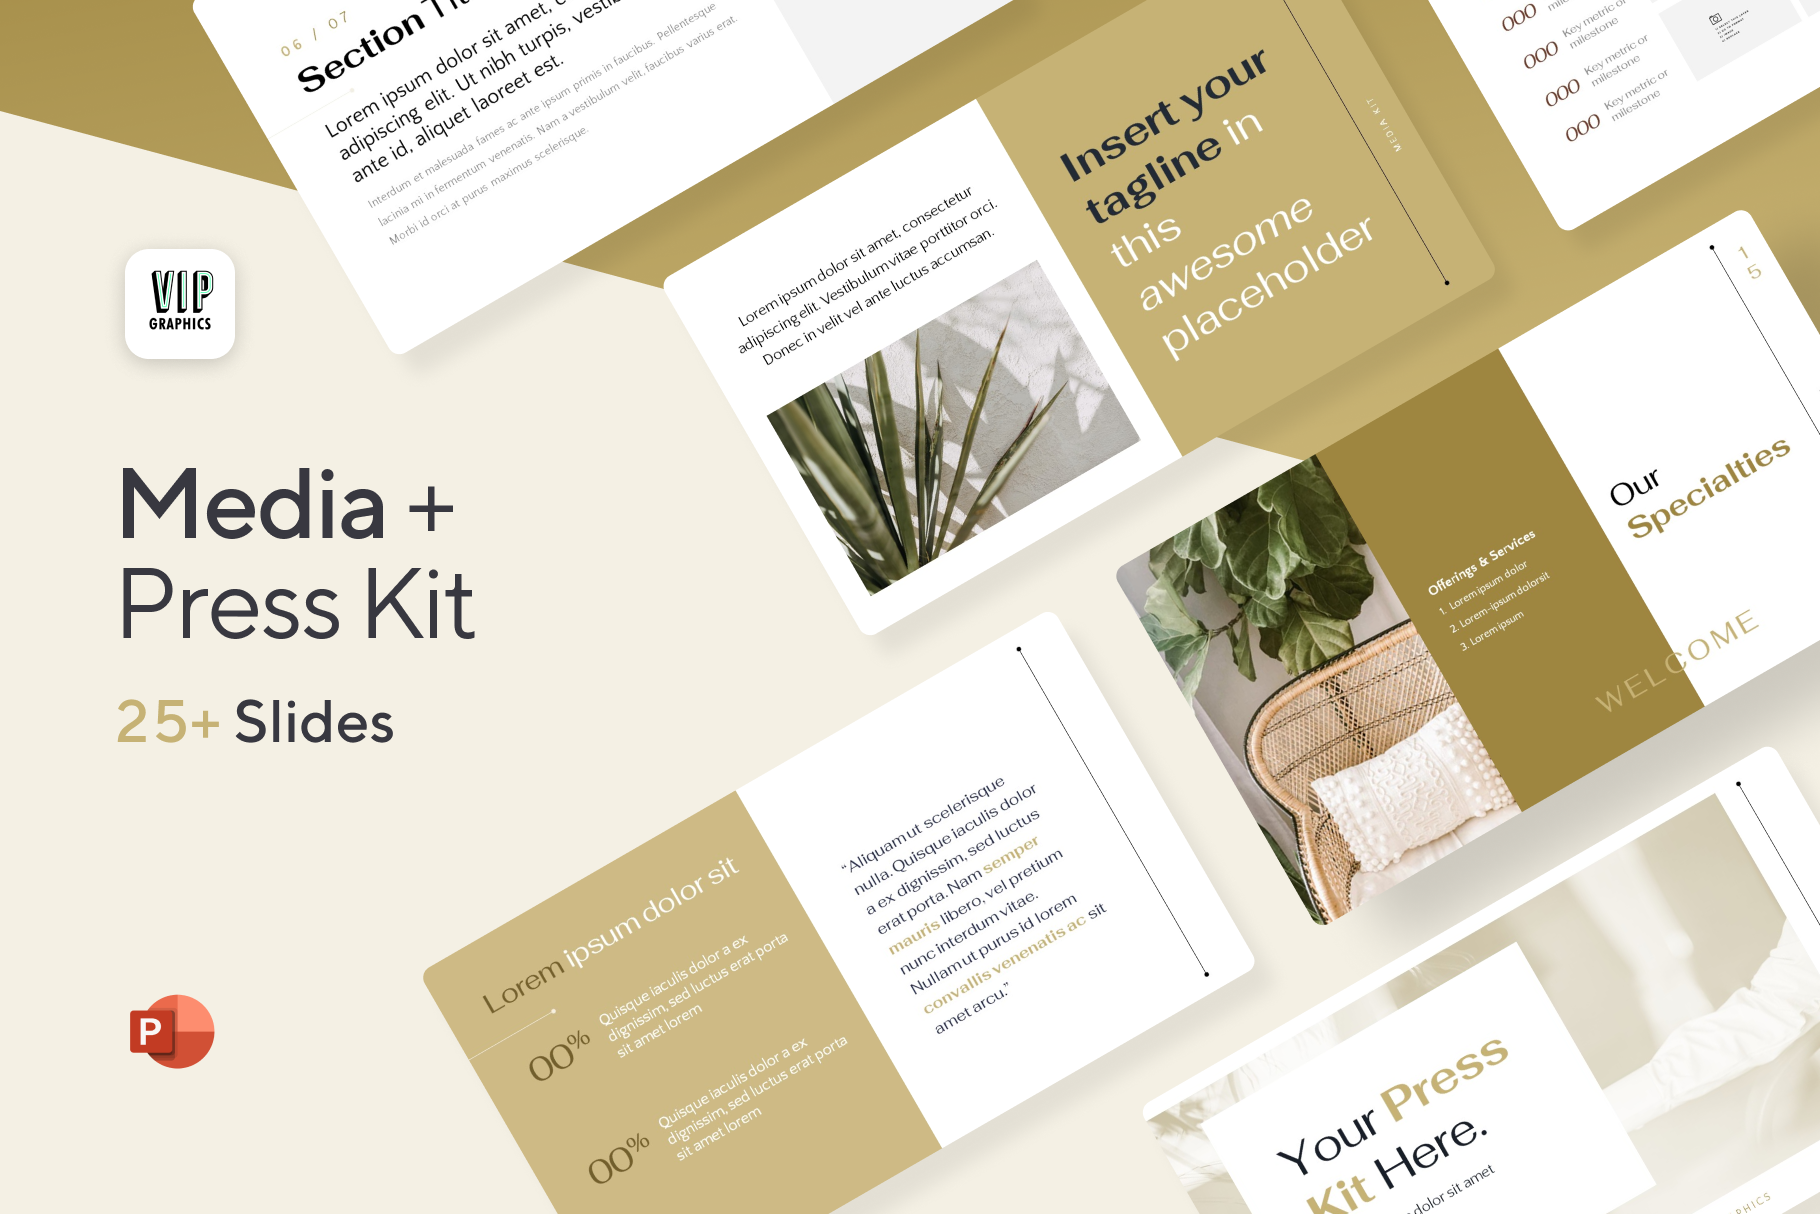 Media Kit / Press Kit Template for PowerPoint - No Photoshop required | VIP.graphics